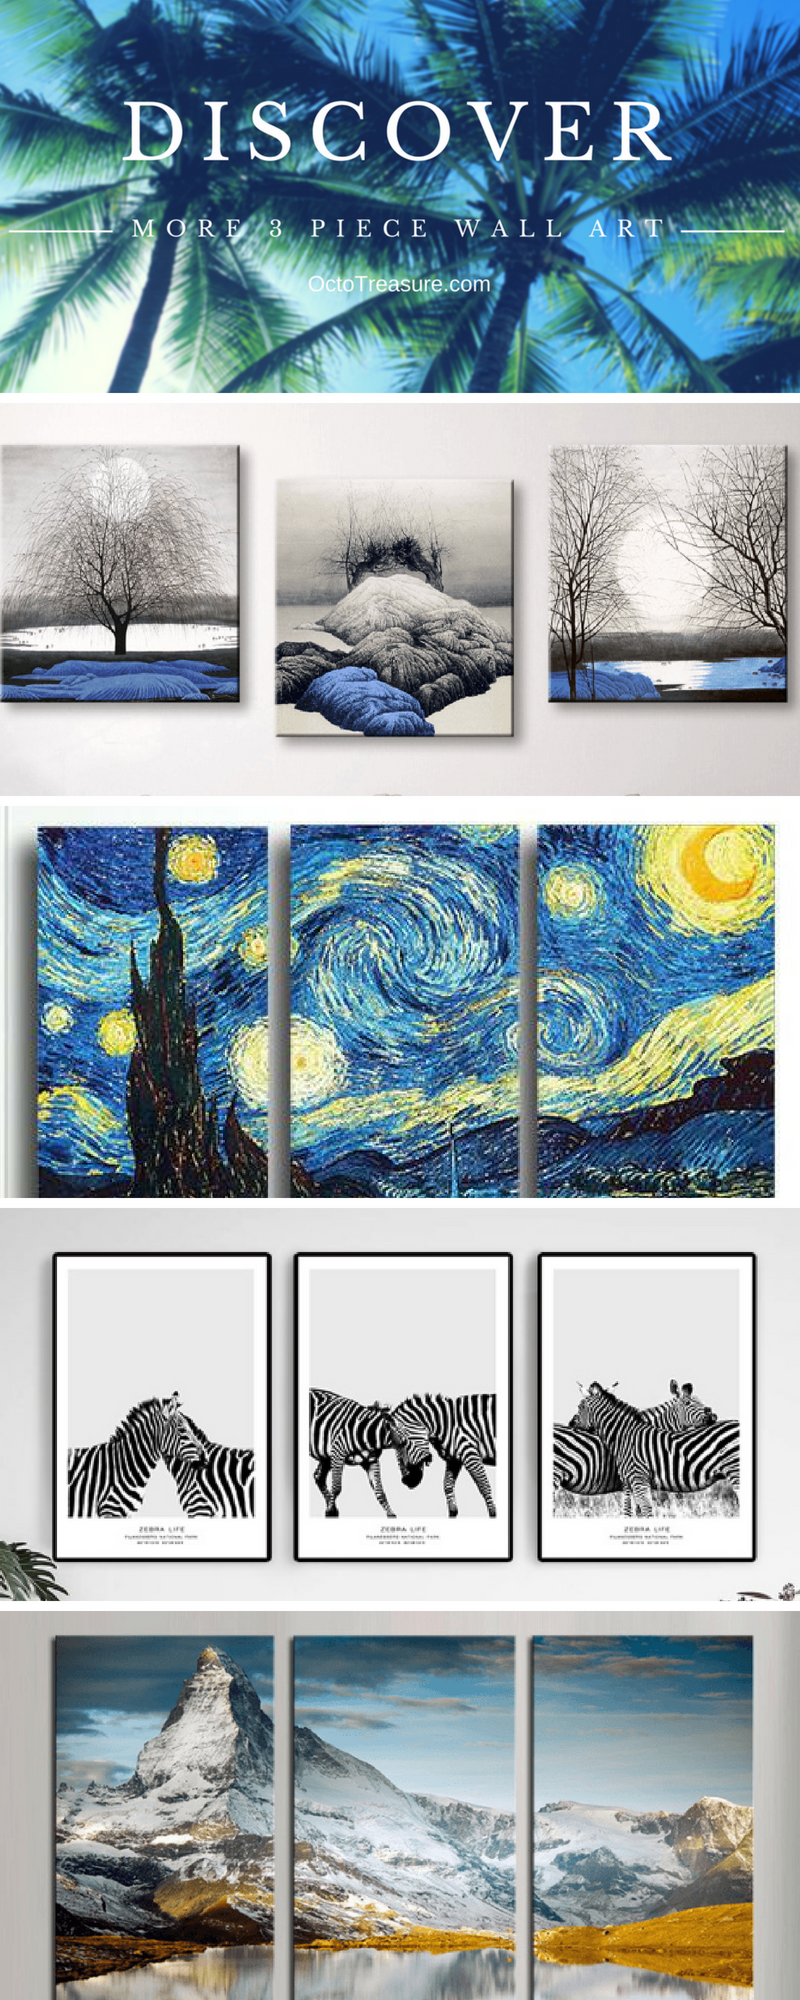 Discover The Perfect 3 Piece Wall Art For Your Home Give A Unique Gift To Your Friends And Family Create A Customi 3 Piece Wall Art 3 Panel Wall Art Wall Art